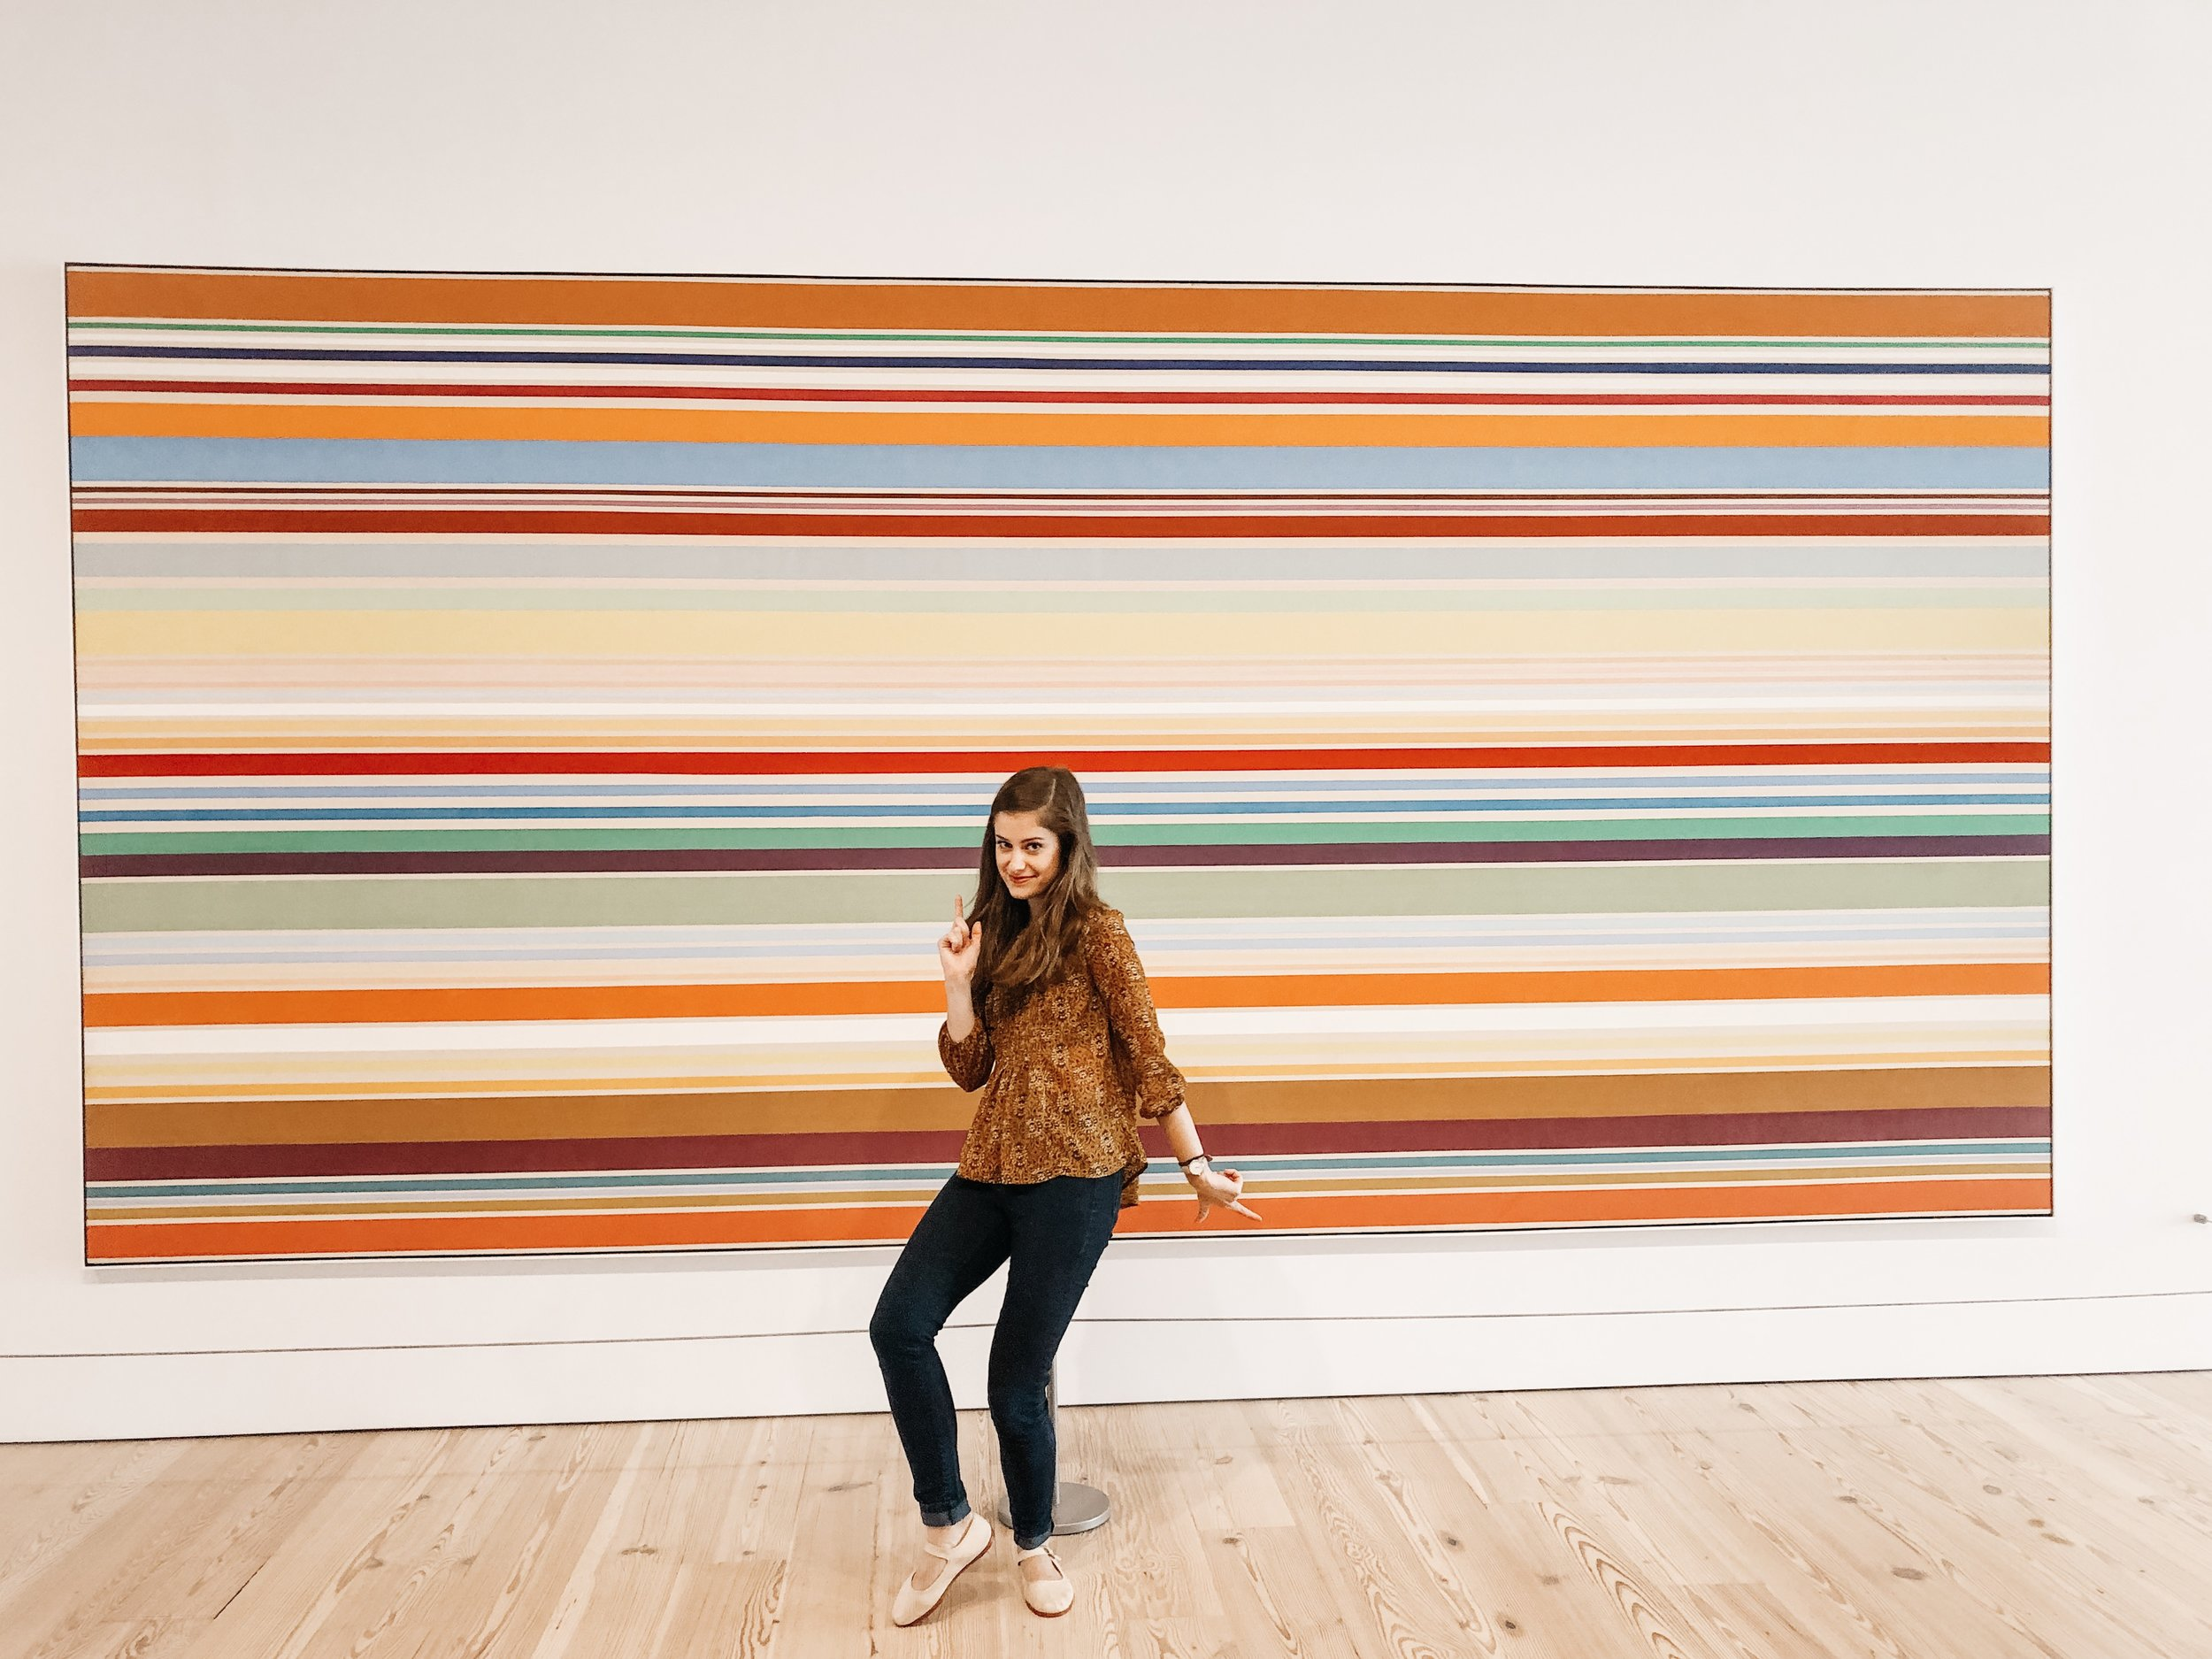 Photo by Sara Kreski of Samantha McHenry at the Modern Art Exhibit in the NYC Whitney Museum of American Art, 2019.